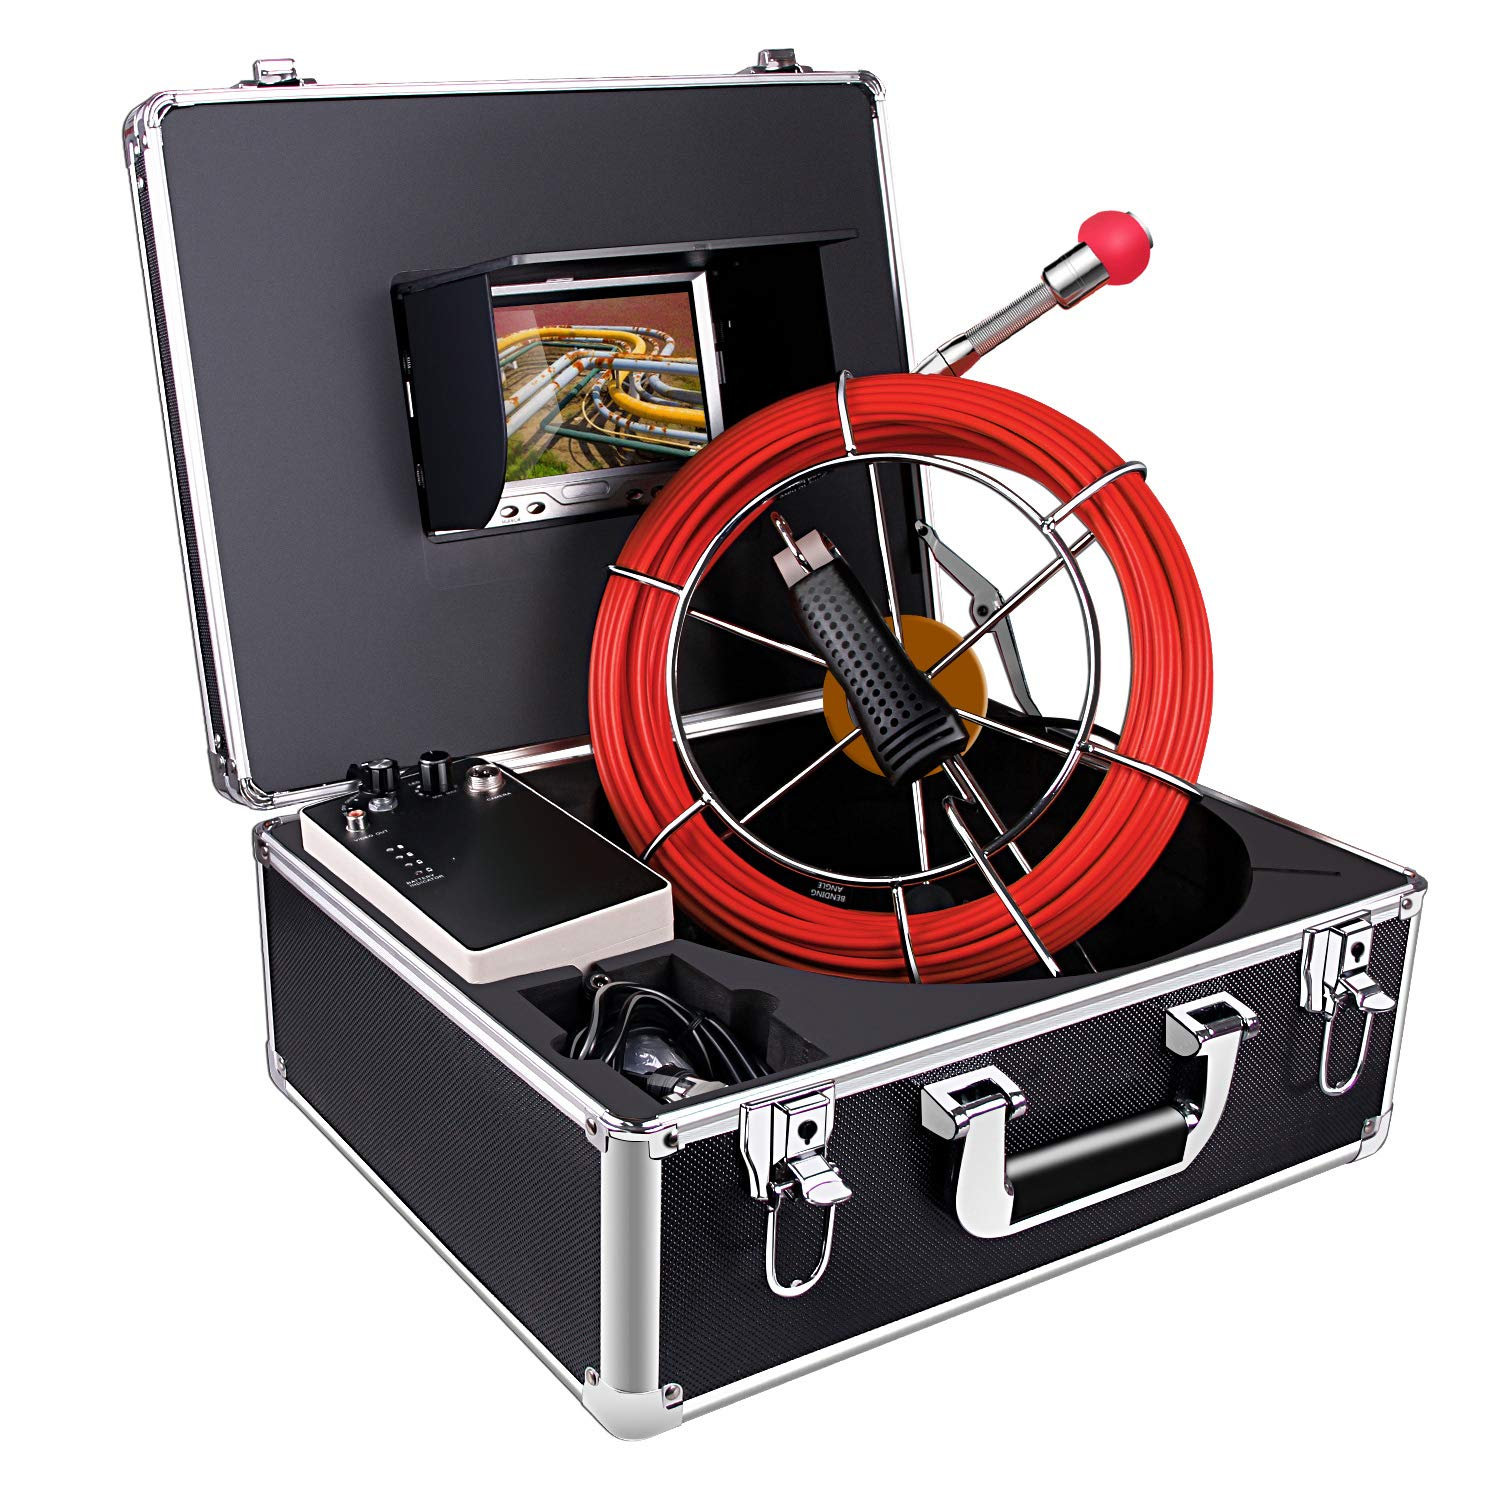 Sewer Pipe Inspction Camera,Anysun 20m-65ft Cable with Distance Counter - Plumbing Snake Industrial Endoscope 4500mAh Battery 7 Inch Color LCD Monitor Waterproof IP68 Borescope Snake Cameras